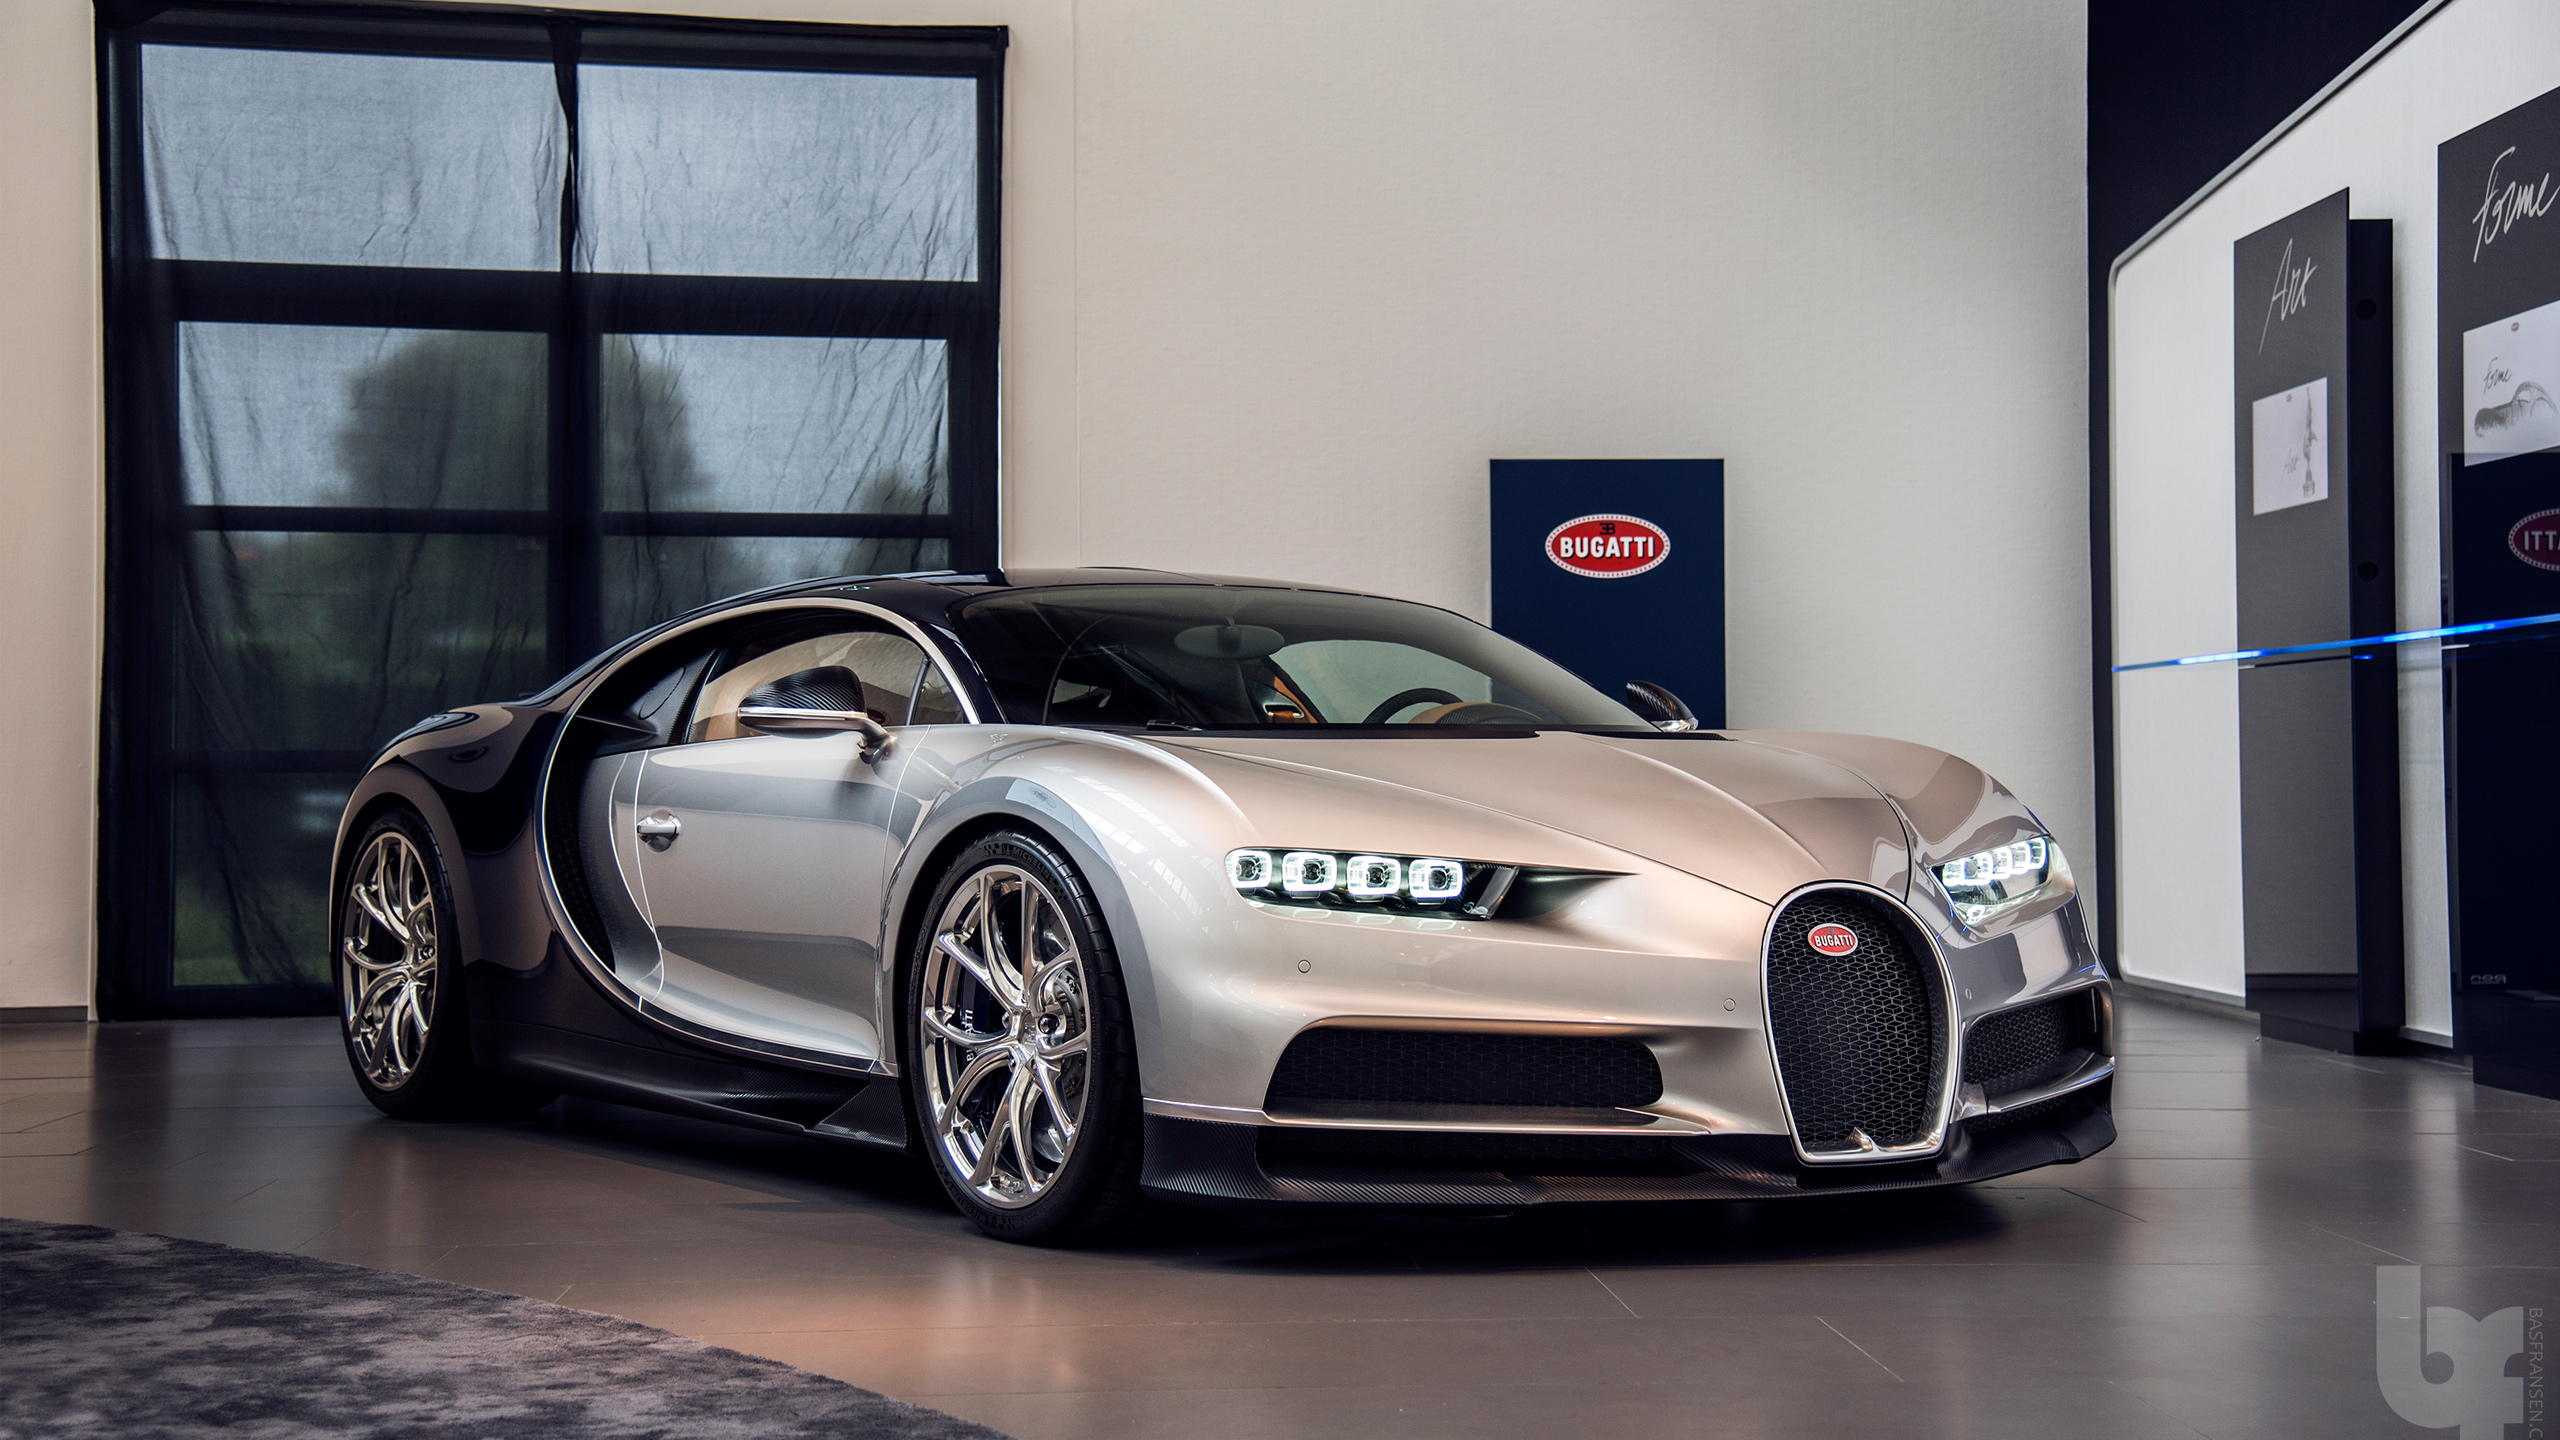 Bugatti Chiron Most Expensive Car Wallpaper HD Car Wallpapers 2560x1440